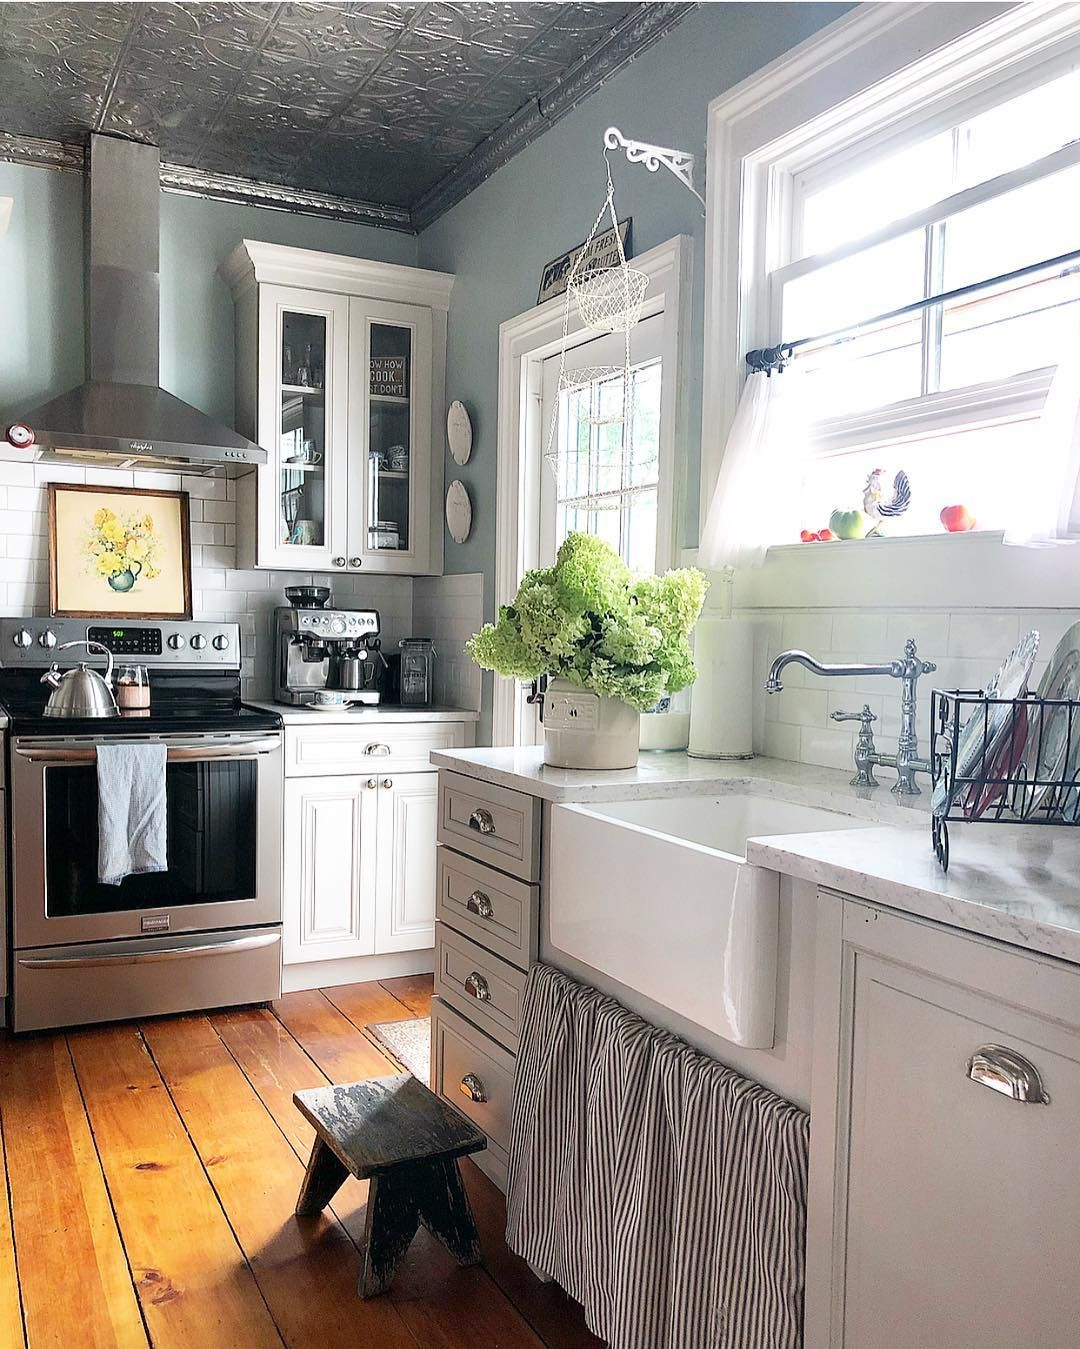 Cabinets Are Sharkley Gray By Martha Stewart Wall Are Beryl By Ms As Well